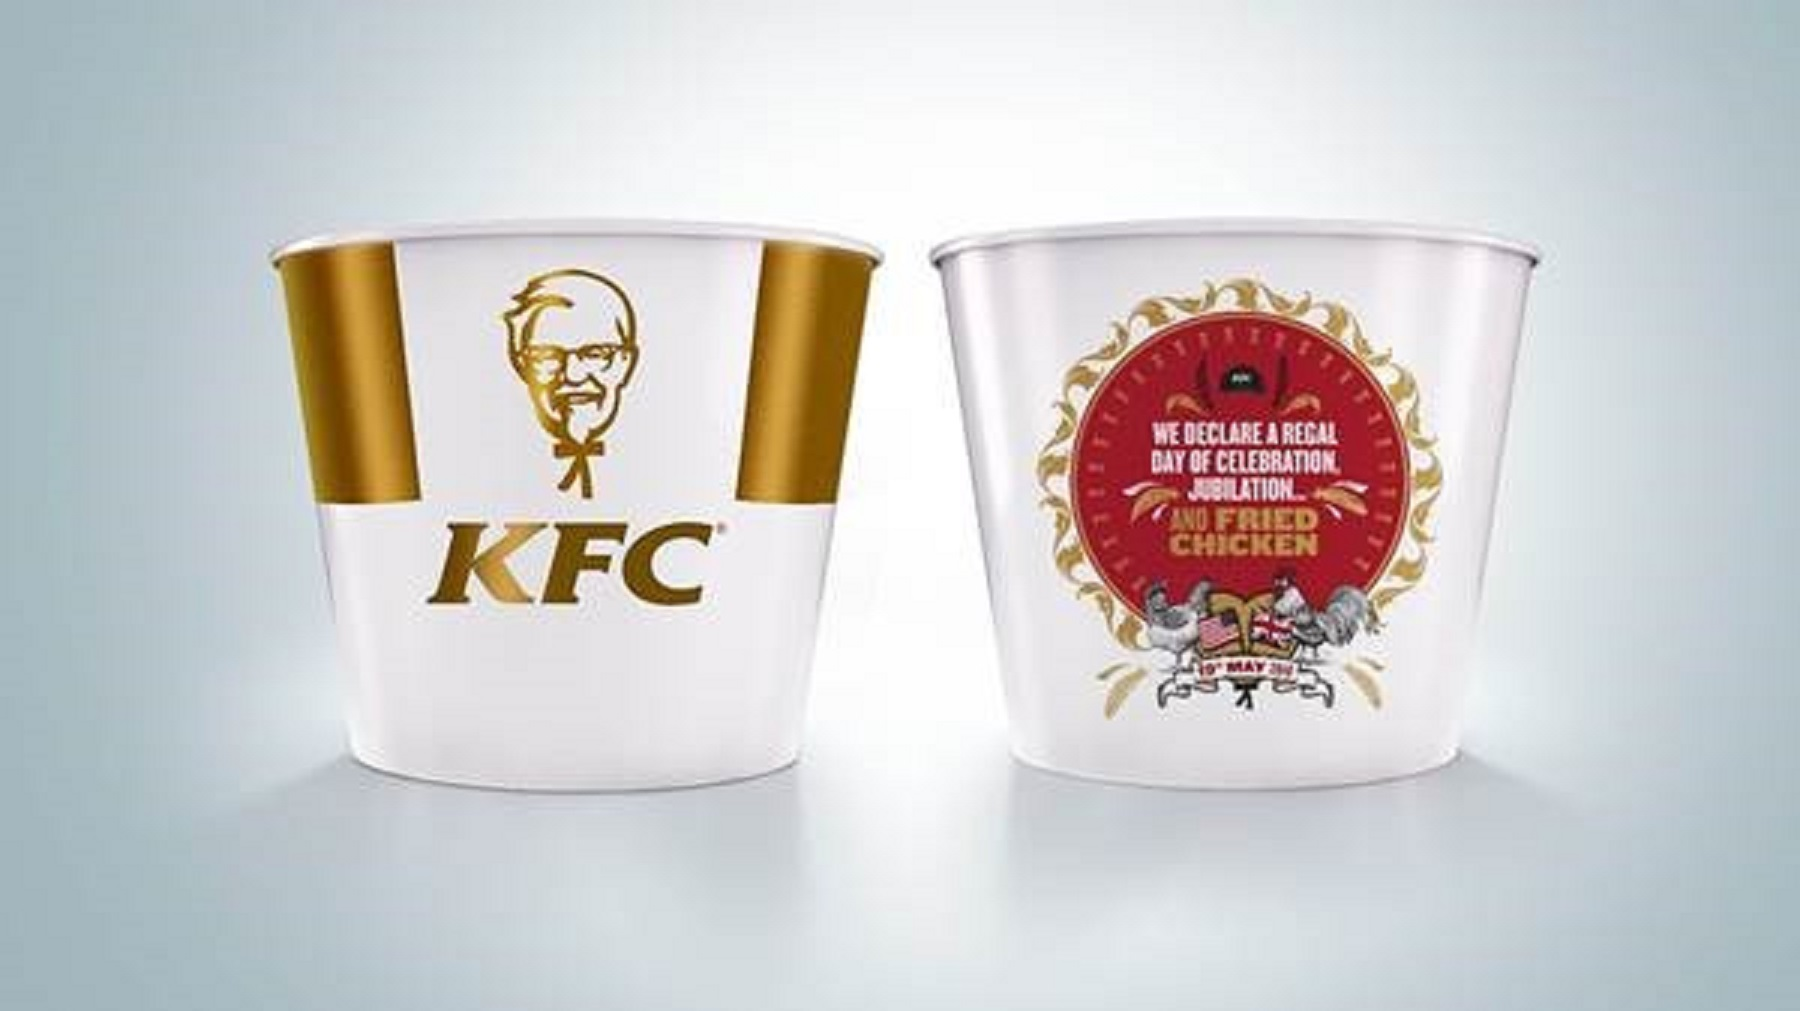 A KFC bucket to commemorate the royal wedding of Prince Harry and Meghan Markle